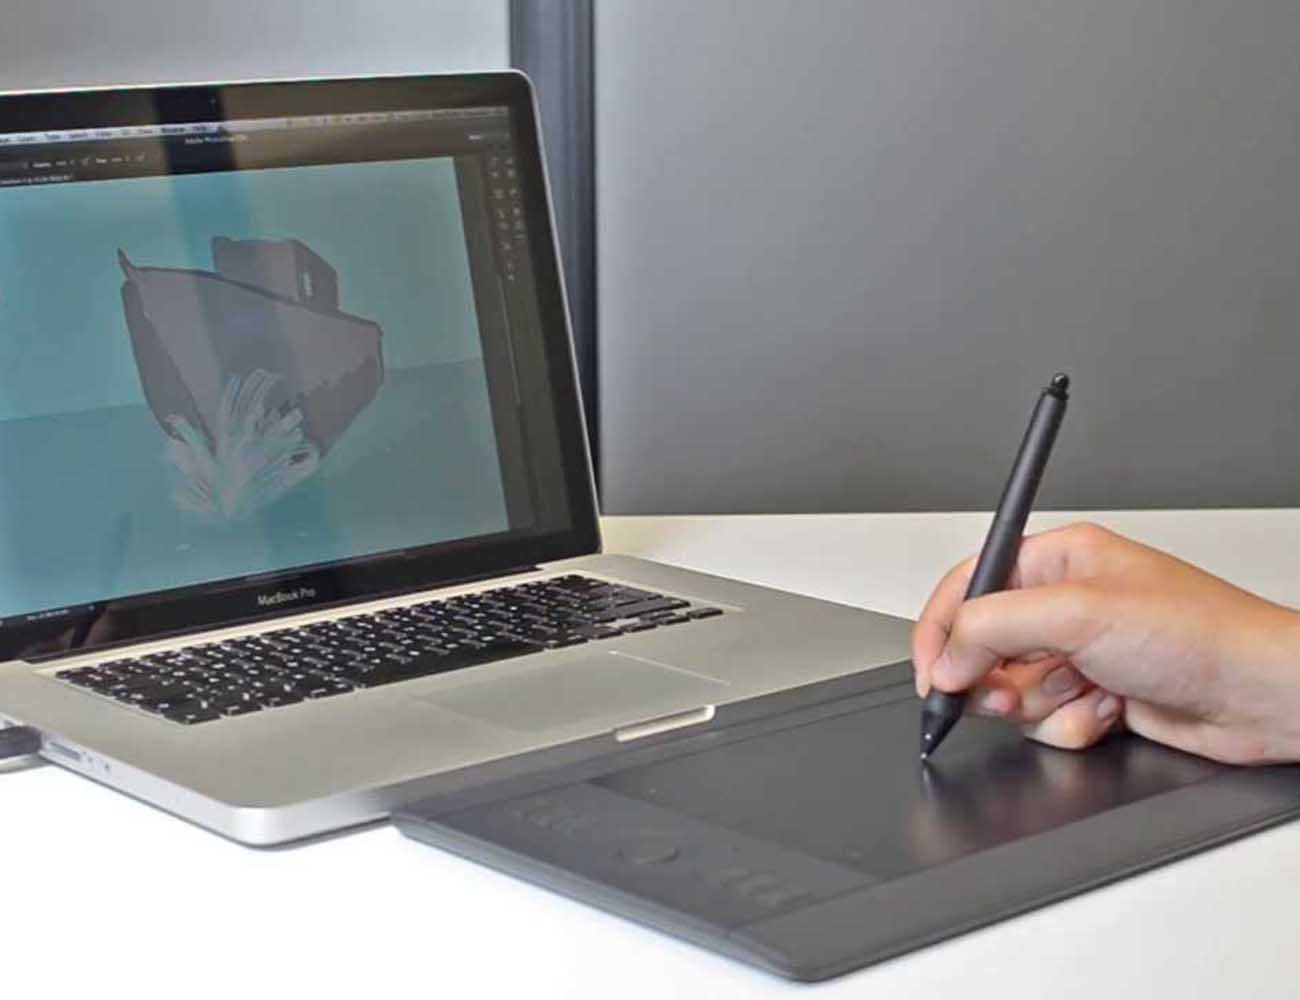 Wacom Intuos – Pro Pen and Touch Tablet